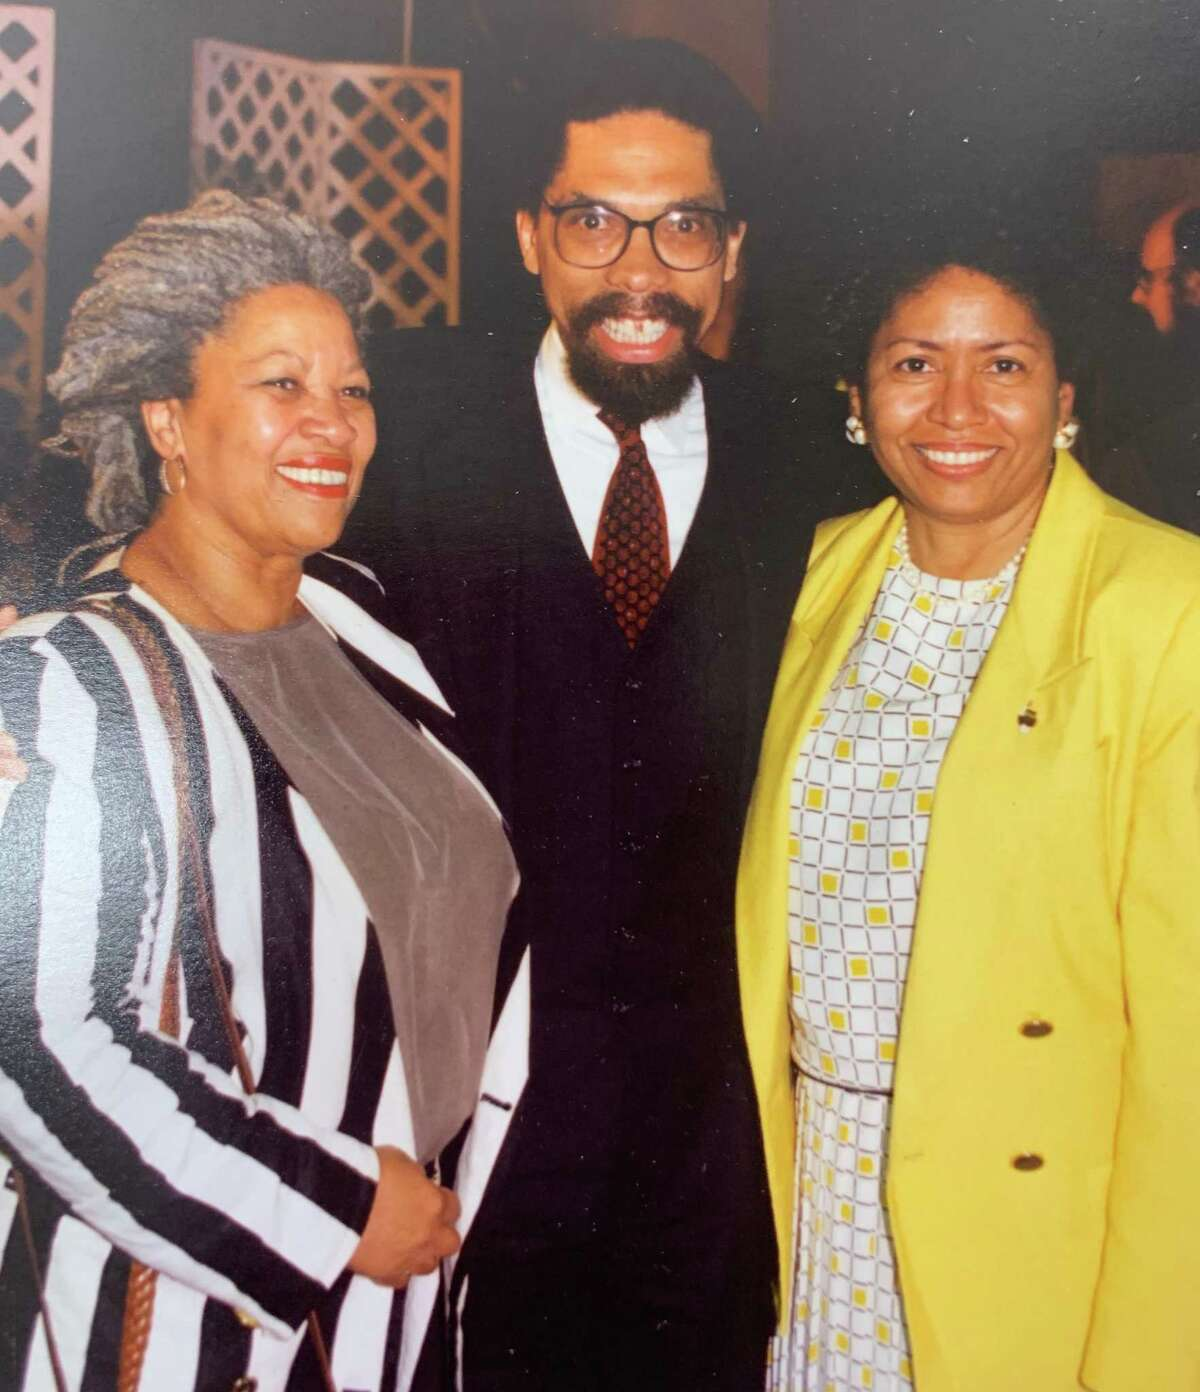 Prairie View A&M University President Ruth Simmons, pictured right, was responsible for recruiting the late Nobel Laureate Toni Morrison (left) to Princeton University while she was working there as associate dean of faculty. Morrison then helped recruit African American scholar and social critic Cornel West (middle).